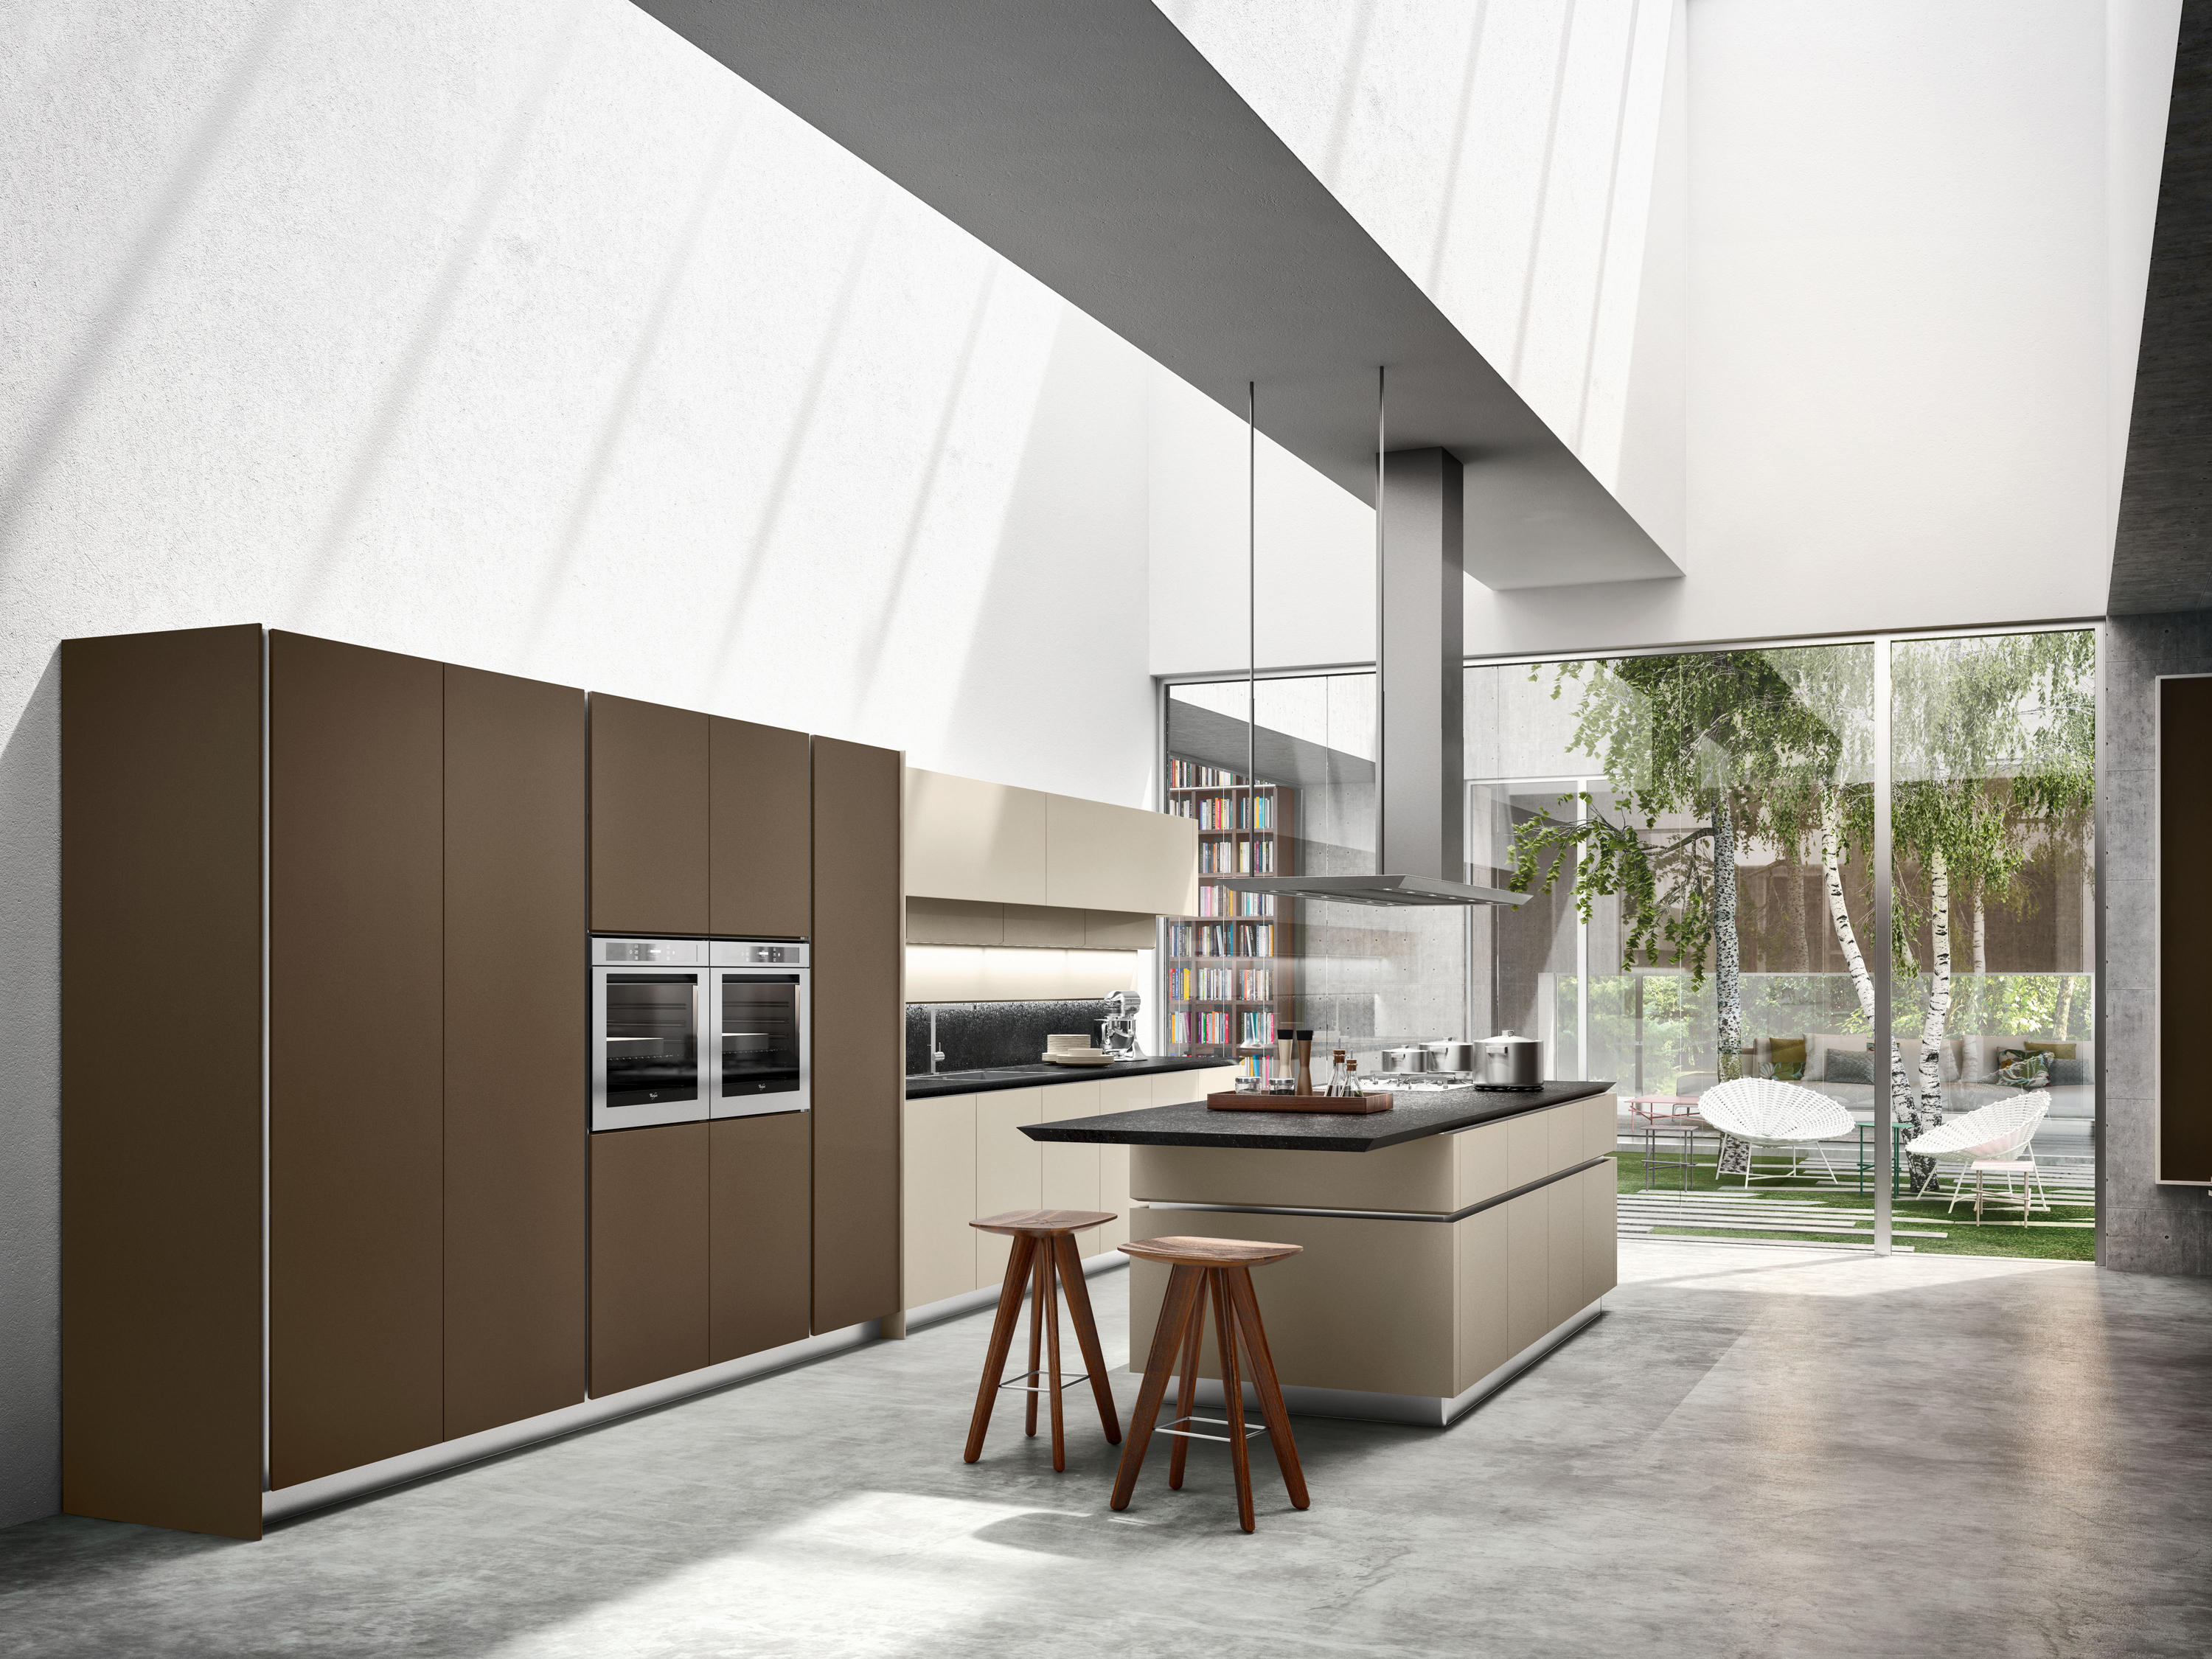 IDEA - Cocinas integrales de Snaidero USA | Architonic